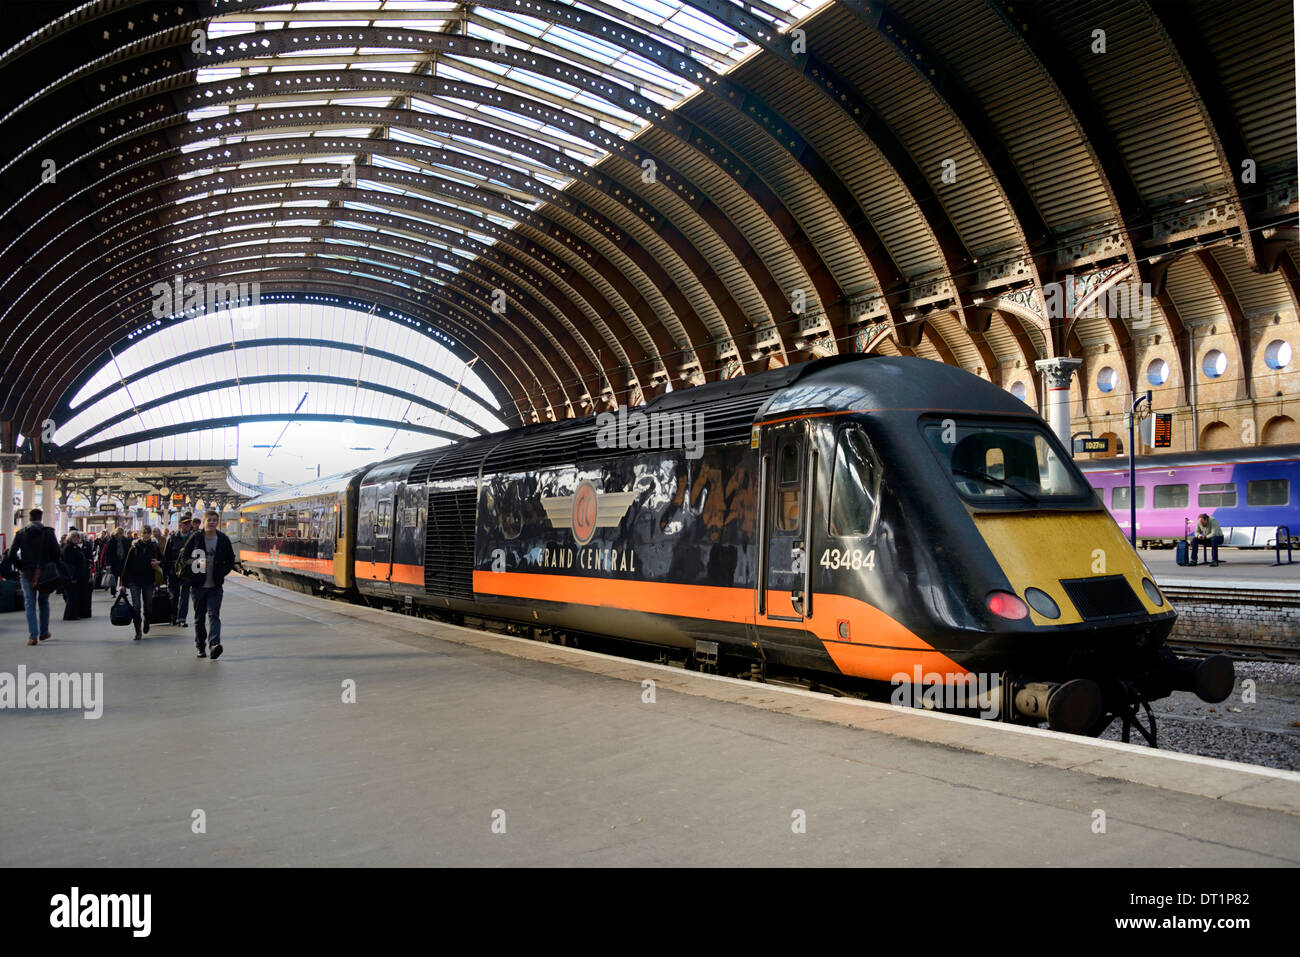 Train at York Railway Station, York, Yorkshire, England, United Kingdom, Europe - Stock Image